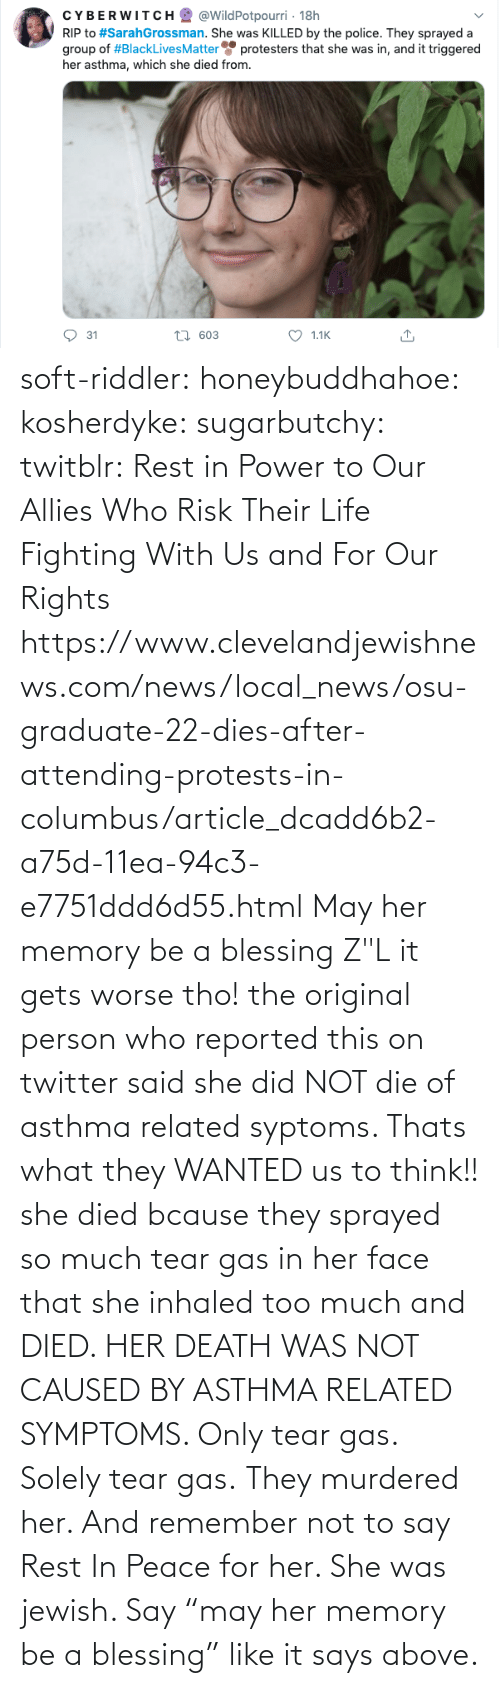 "Peace: soft-riddler:  honeybuddhahoe:  kosherdyke:  sugarbutchy:  twitblr: Rest in Power to Our Allies Who Risk Their Life Fighting With Us and For Our Rights https://www.clevelandjewishnews.com/news/local_news/osu-graduate-22-dies-after-attending-protests-in-columbus/article_dcadd6b2-a75d-11ea-94c3-e7751ddd6d55.html    May her memory be a blessing Z""L  it gets worse tho! the original person who reported this on twitter said she did NOT die of asthma related syptoms. Thats what they WANTED us to think!! she died bcause they sprayed so much tear gas in her face that she inhaled too much and DIED. HER DEATH WAS NOT CAUSED BY ASTHMA RELATED SYMPTOMS. Only tear gas. Solely tear gas. They murdered her.     And remember not to say Rest In Peace for her. She was jewish. Say ""may her memory be a blessing"" like it says above."